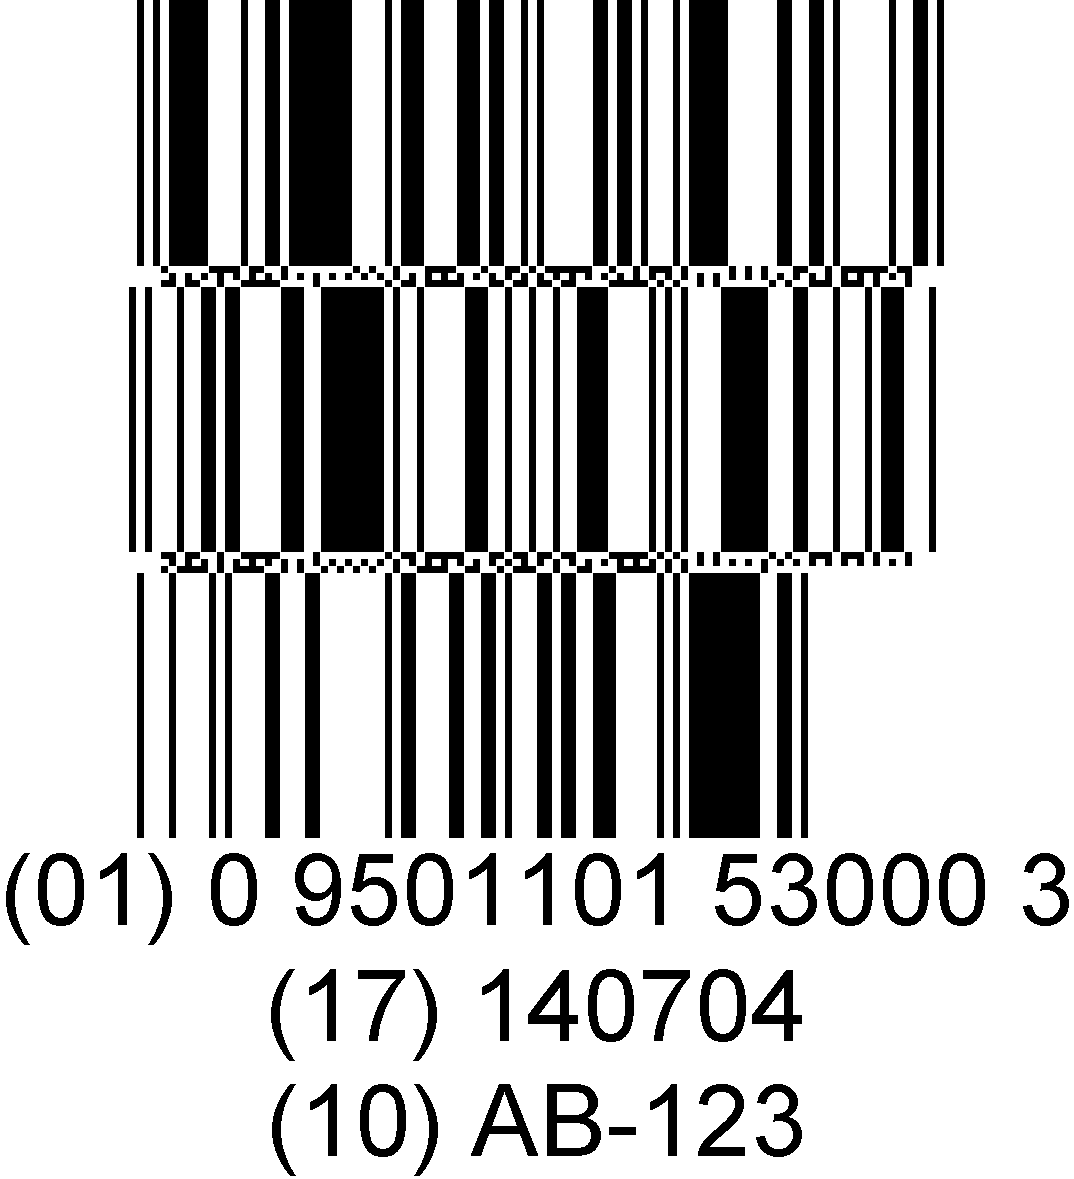 DataBar_Expanded_Stacked.png